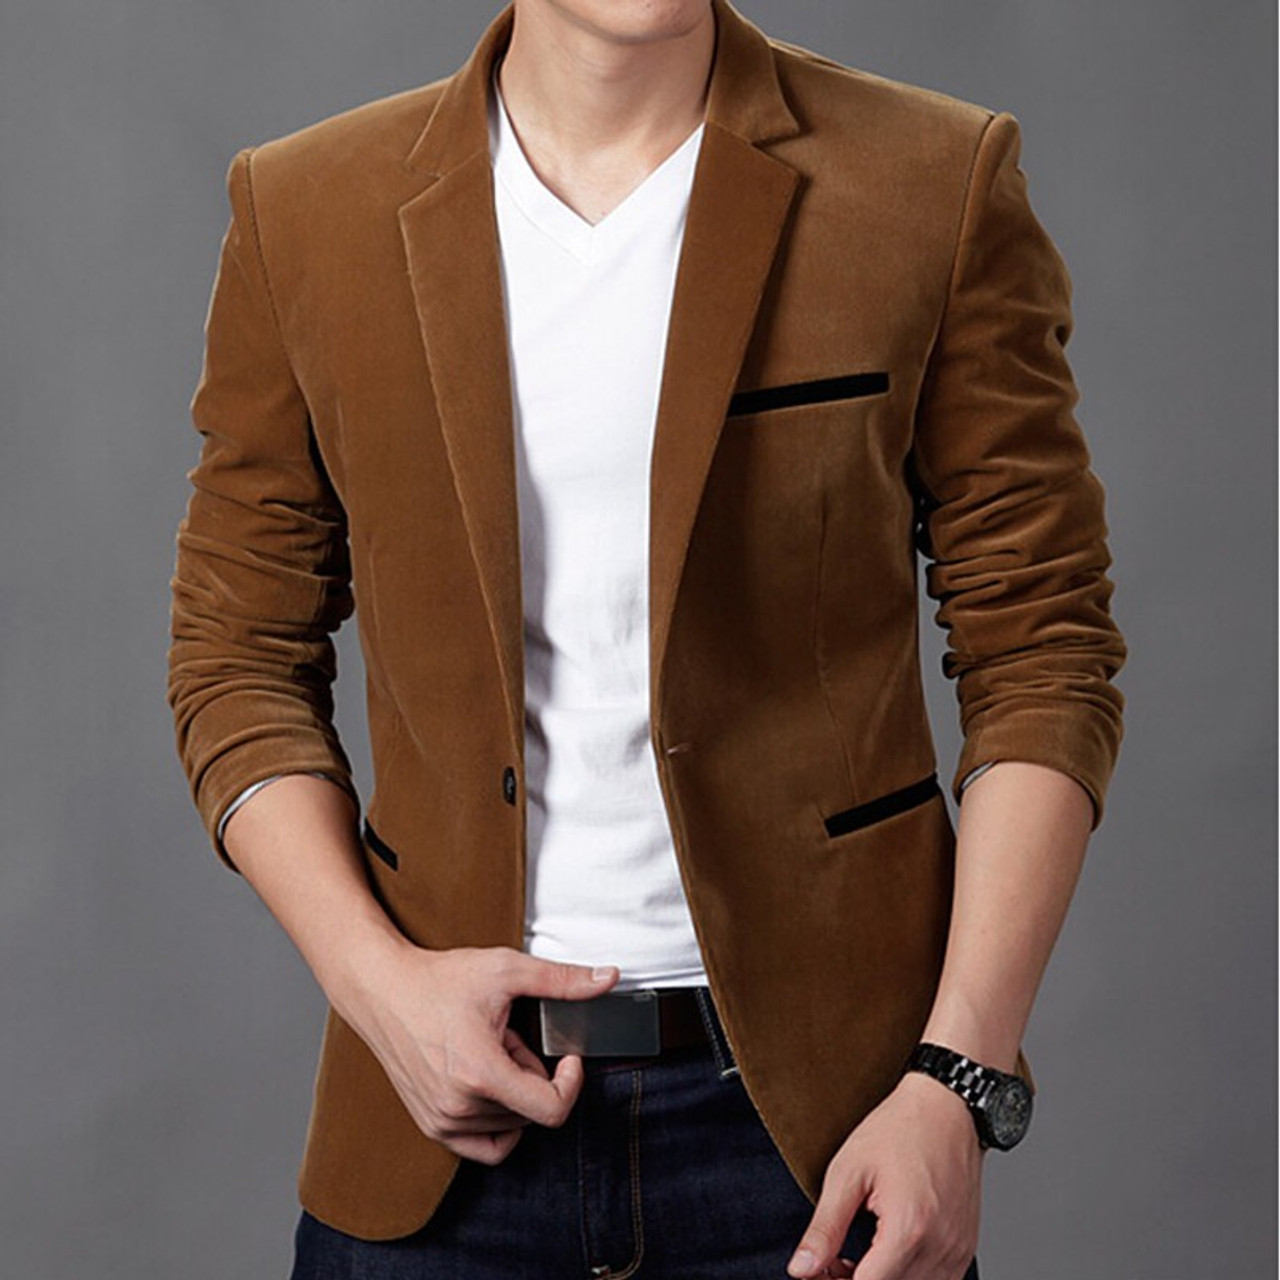 a202f21c923ec ... 2018 mens blazer brand clothing casual suit Slim Jacket Single Button corduroy  blazer men dress suits ...